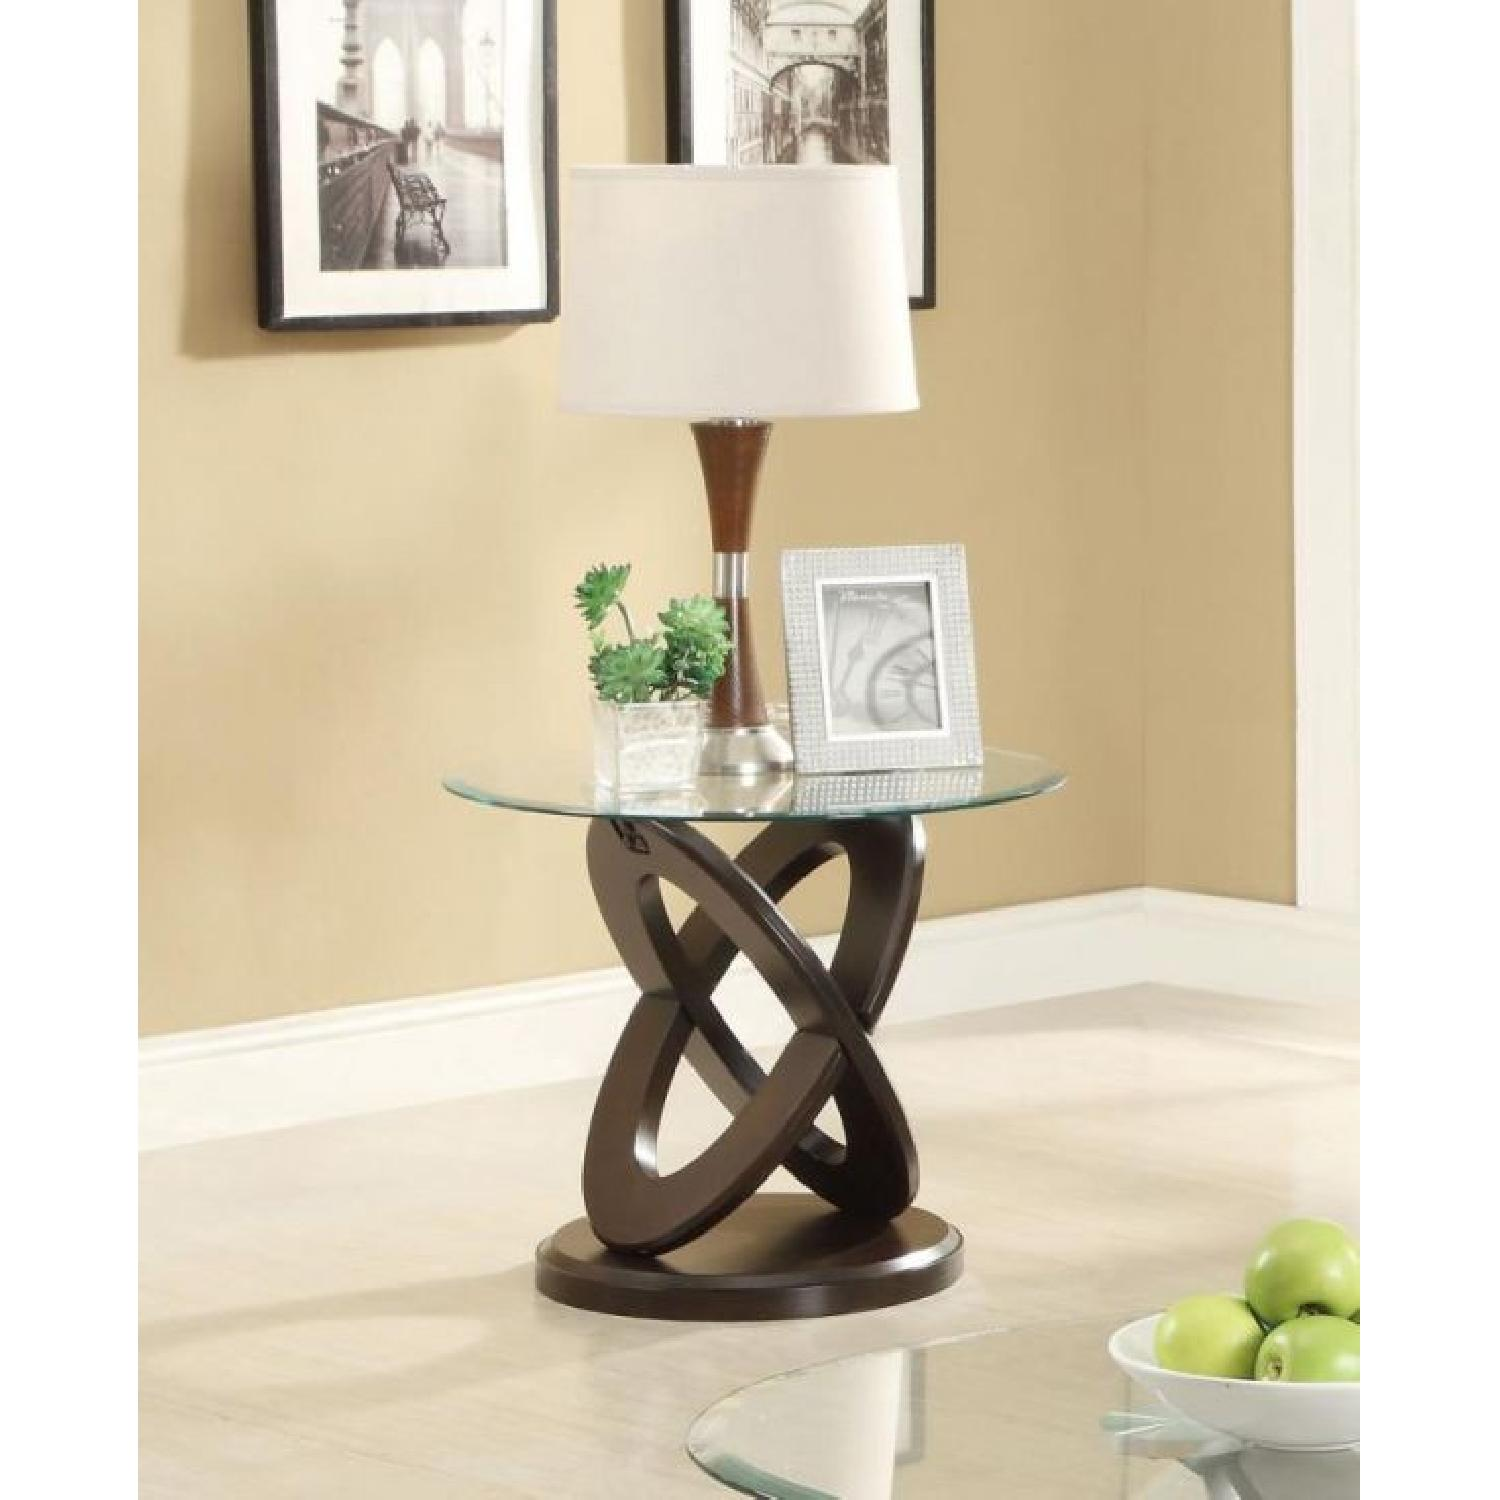 Oval Glass End Table w/ Cappuccino Legs - image-1